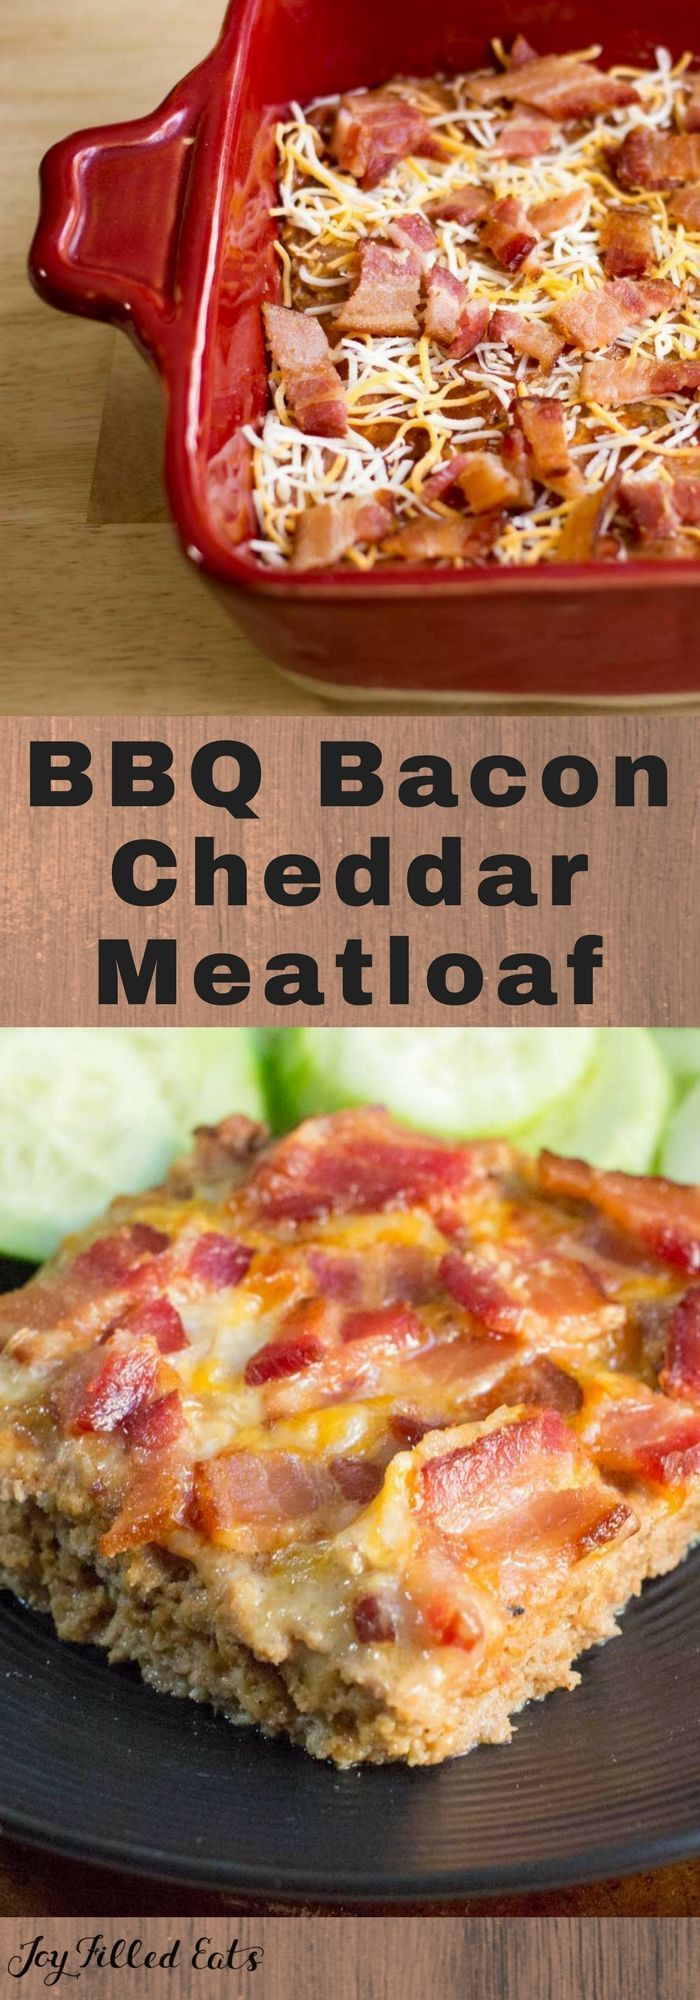 BBQ Bacon Cheddar Meatloaf - Low Carb, Grain & Gluten Free, THM S - This BBQ Bacon Cheddar Meatloaf comes together in about 5 minutes. It has so much flavor from the barbecue sauce, bacon, and cheddar you won't be able to resist having seconds. via /joyfilledeats/